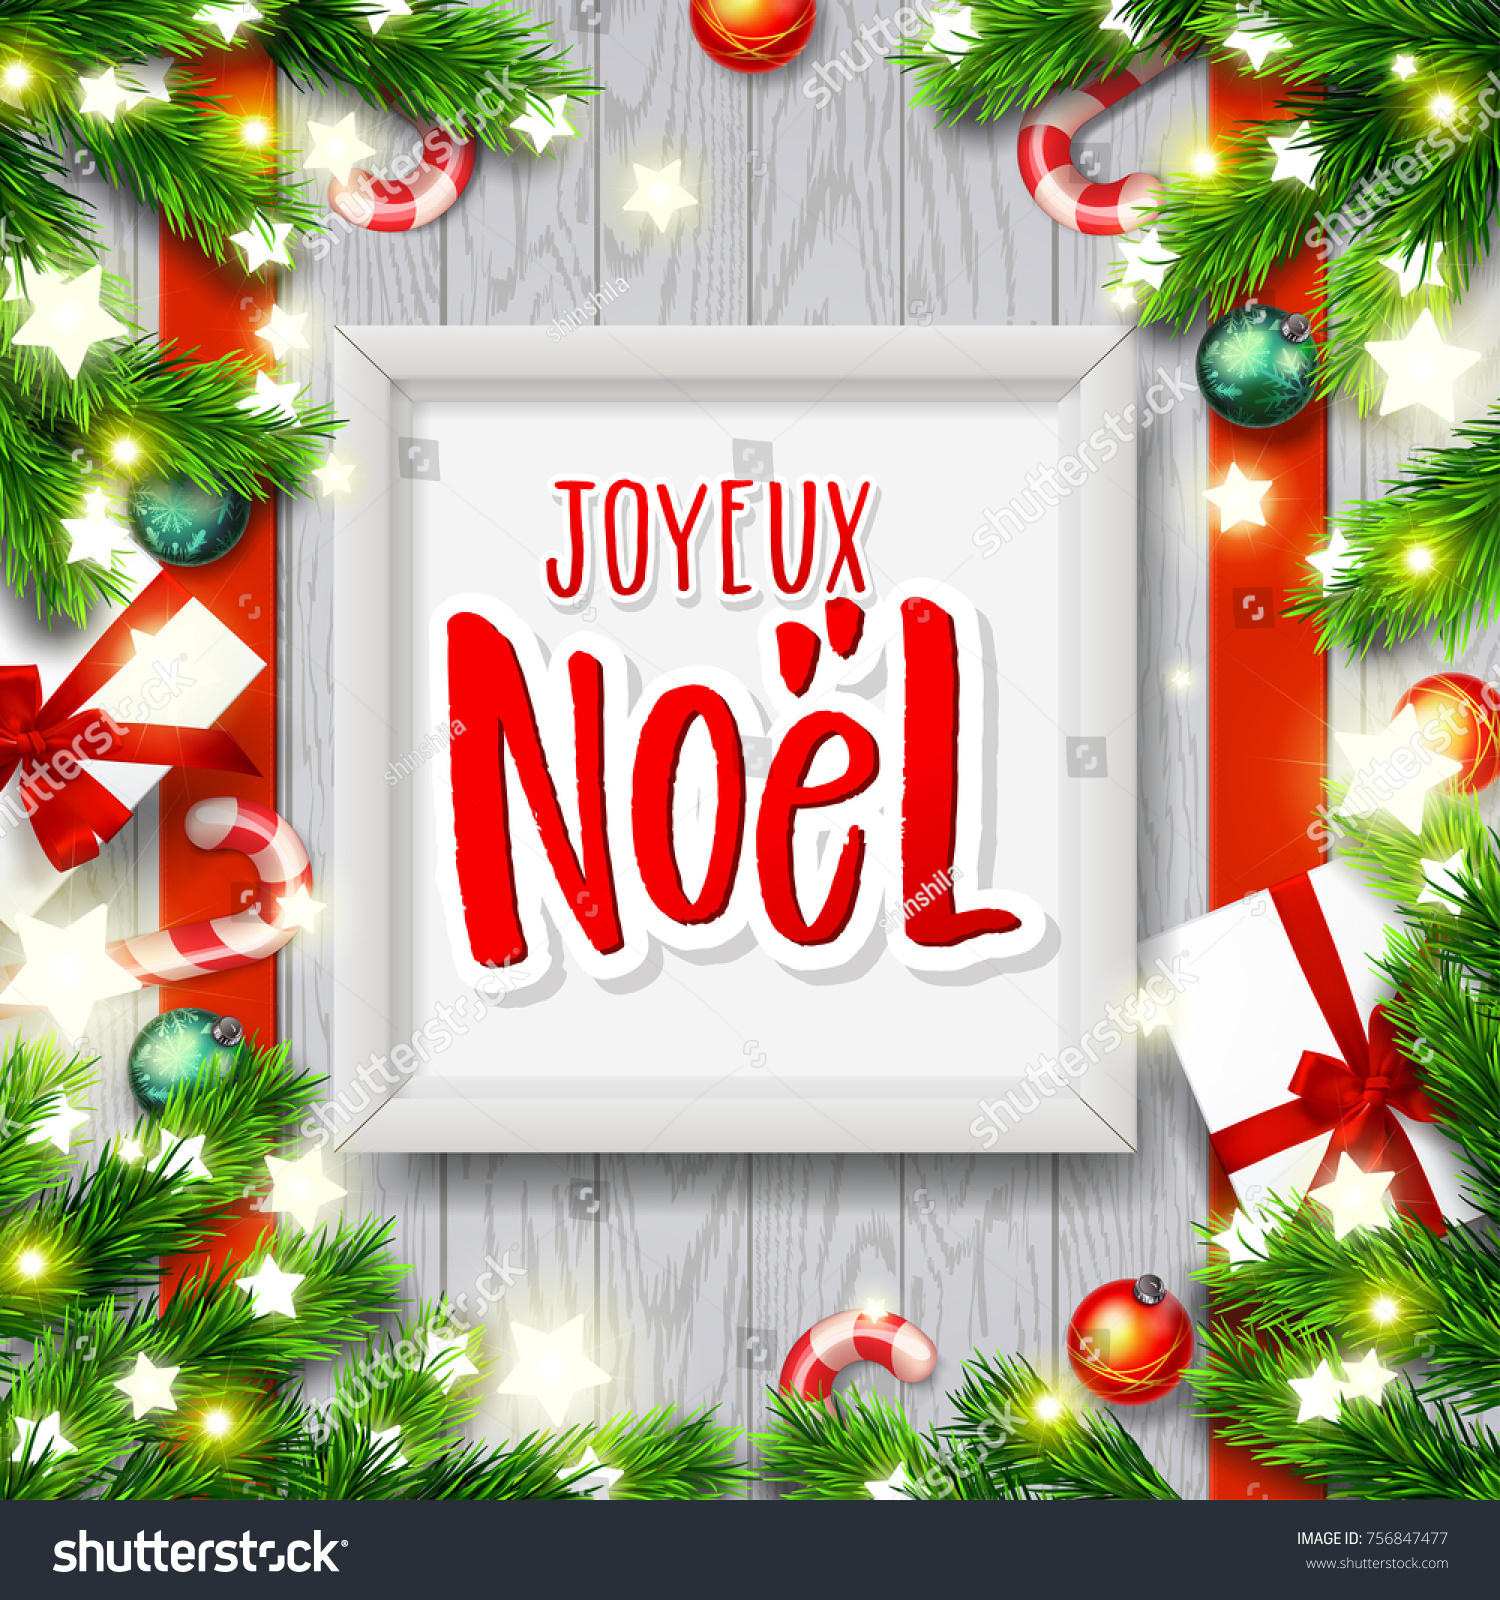 Merry christmas greeting card greetings french stock vector merry christmas greeting card greetings french stock vector 756847477 shutterstock m4hsunfo